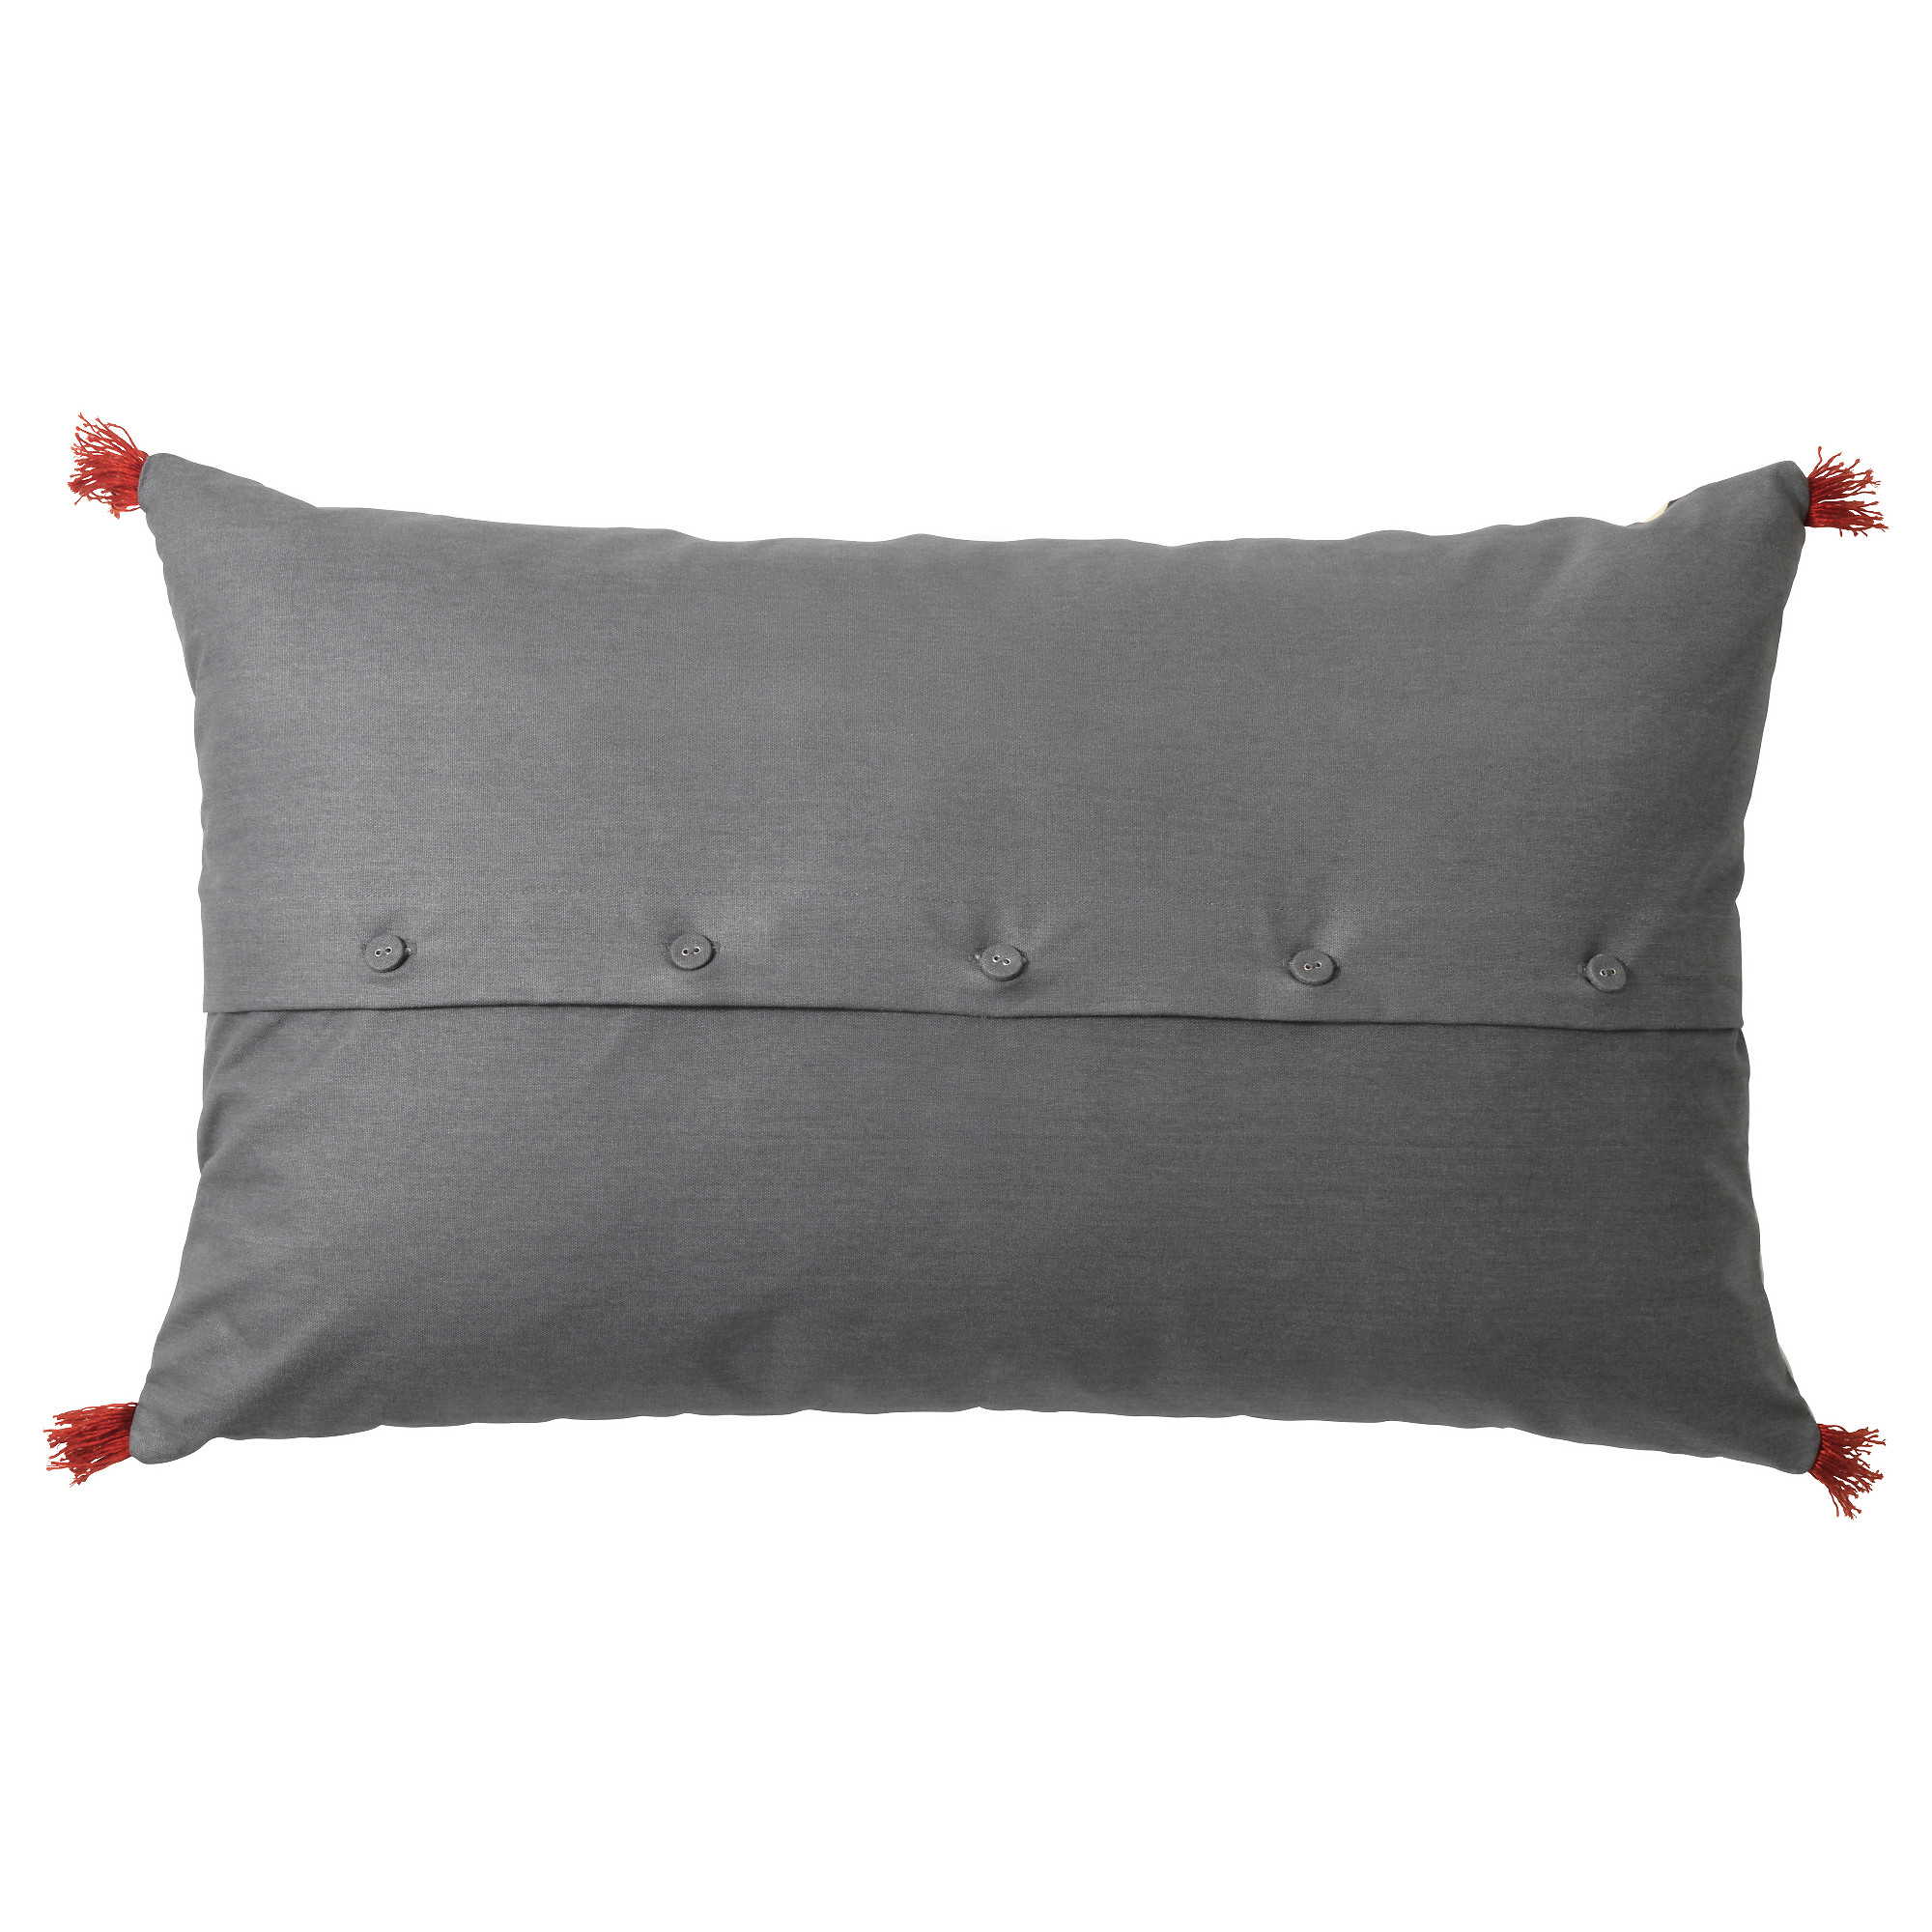 R–DARV Cushion IKEA